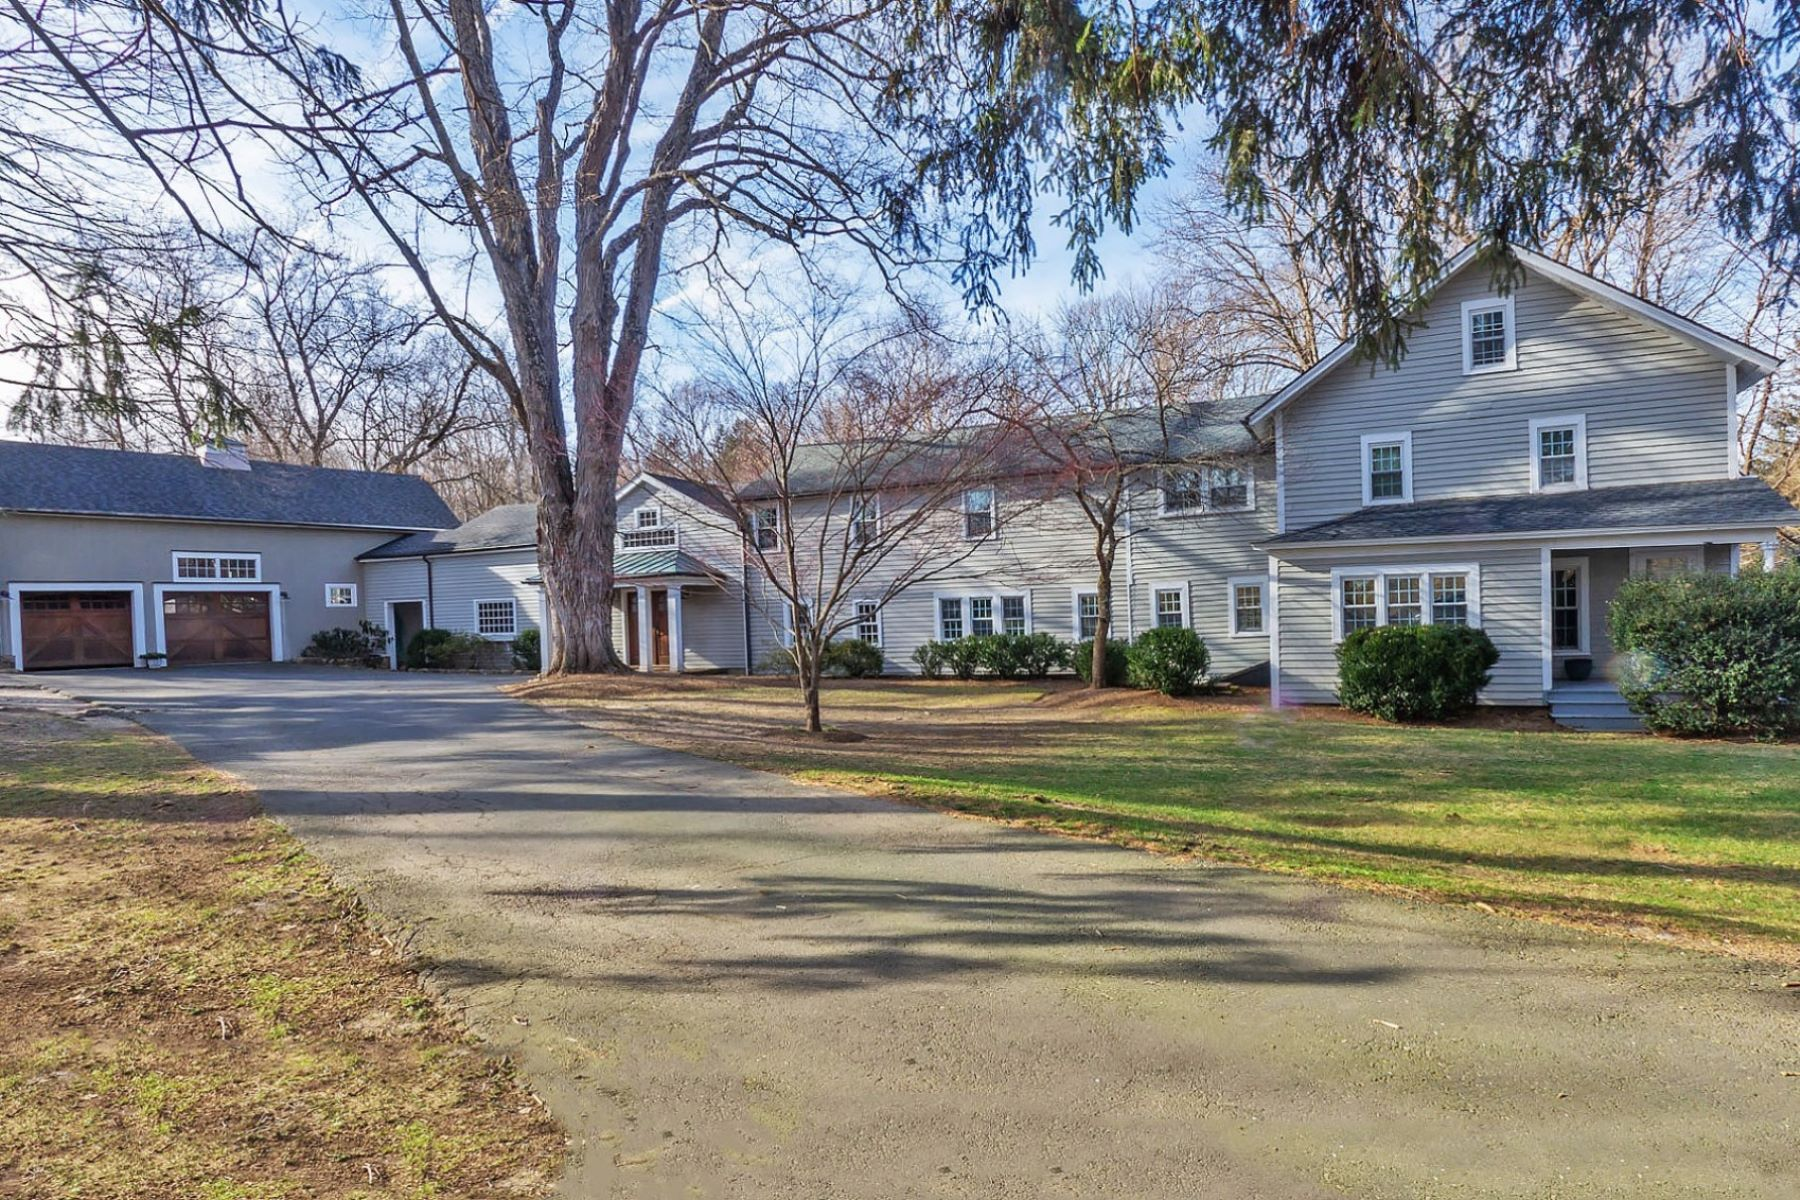 Single Family Home for Sale at 203 Ridgefield Road 203 Ridgefield Road Wilton, Connecticut 06897 United States